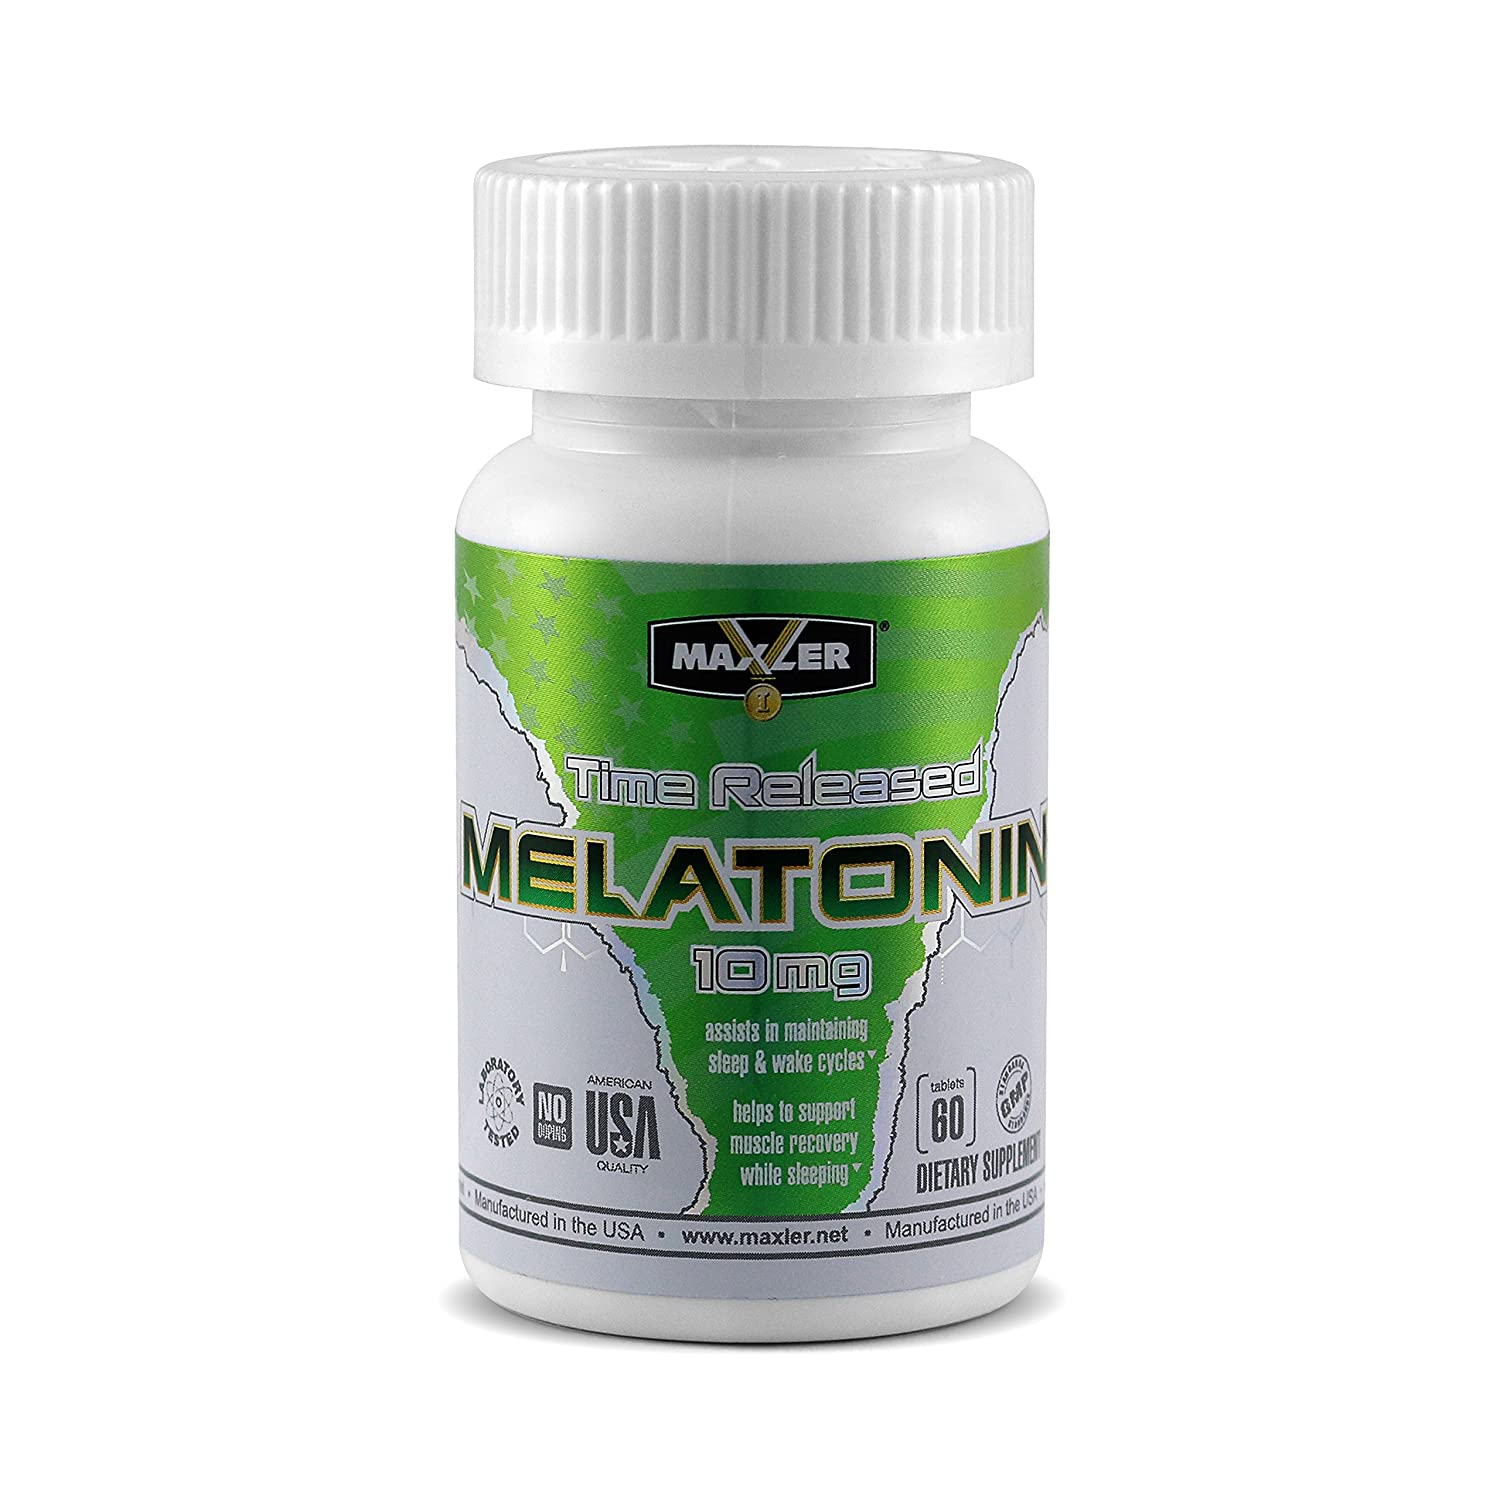 Amazon.com: Melatonin 10mg | Premium Time-Release Sleep & Recovery Formula (60 Tablets): Health & Personal Care